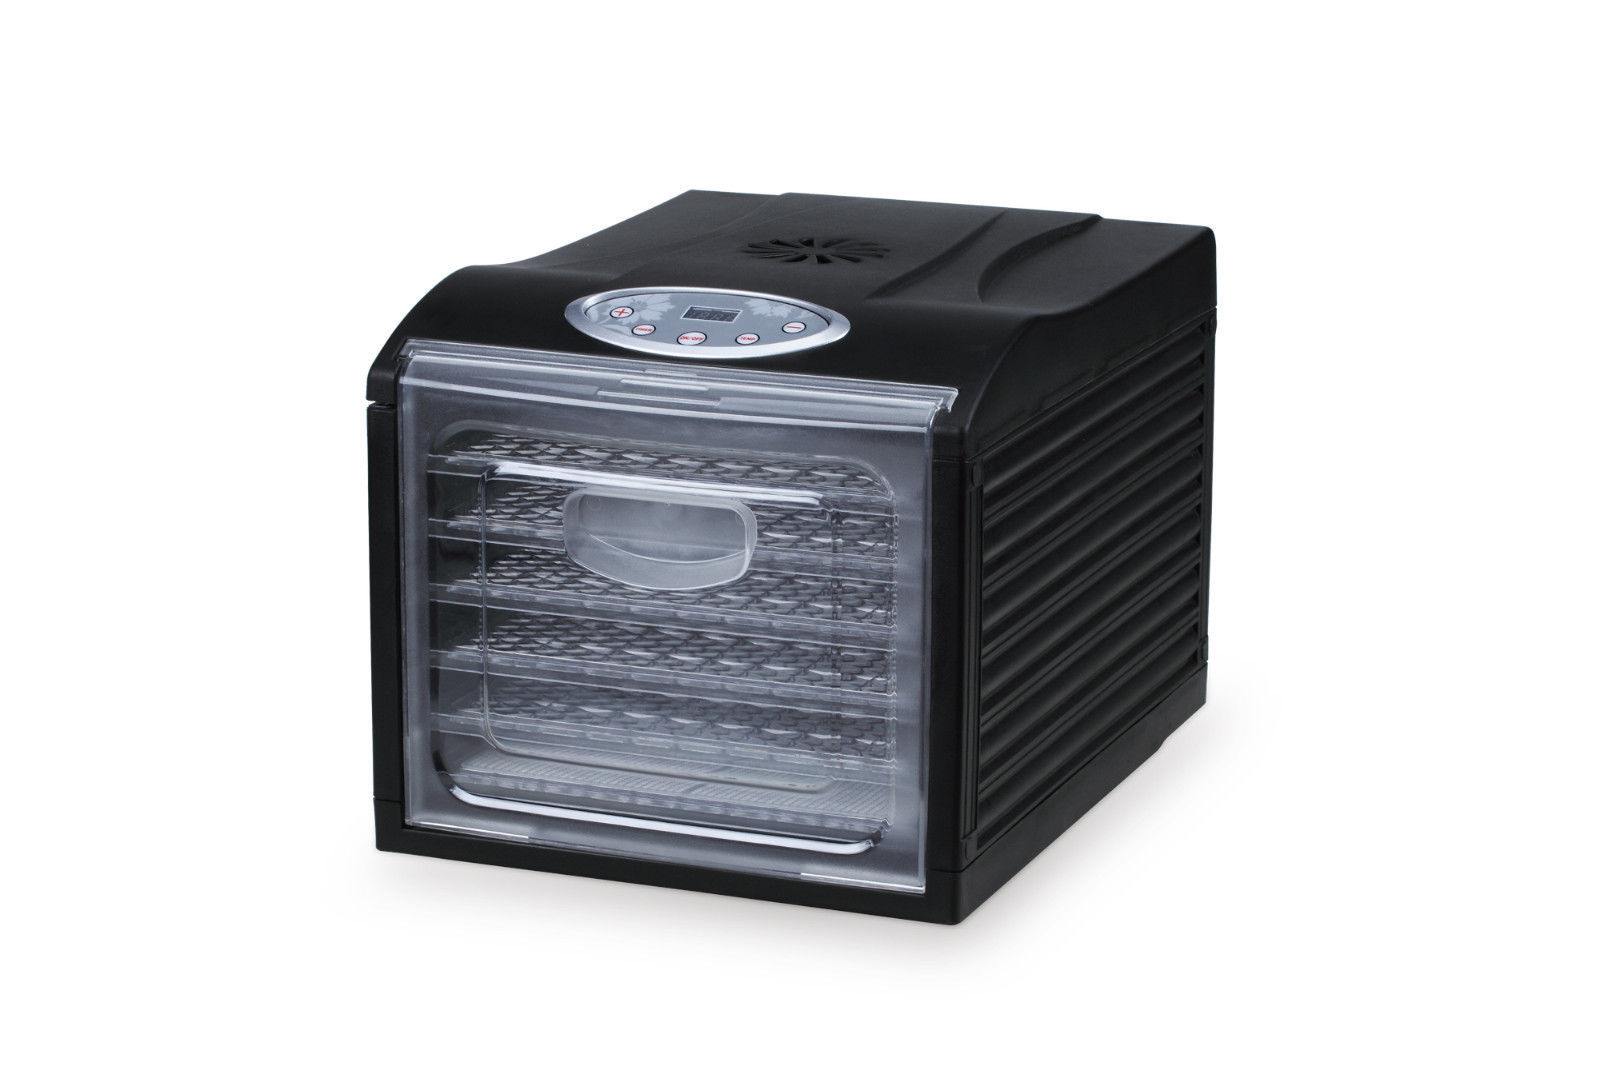 "Samson ""Silent"" 6 Tray Dehydrator with Digital Controls Quiet and Convenient"